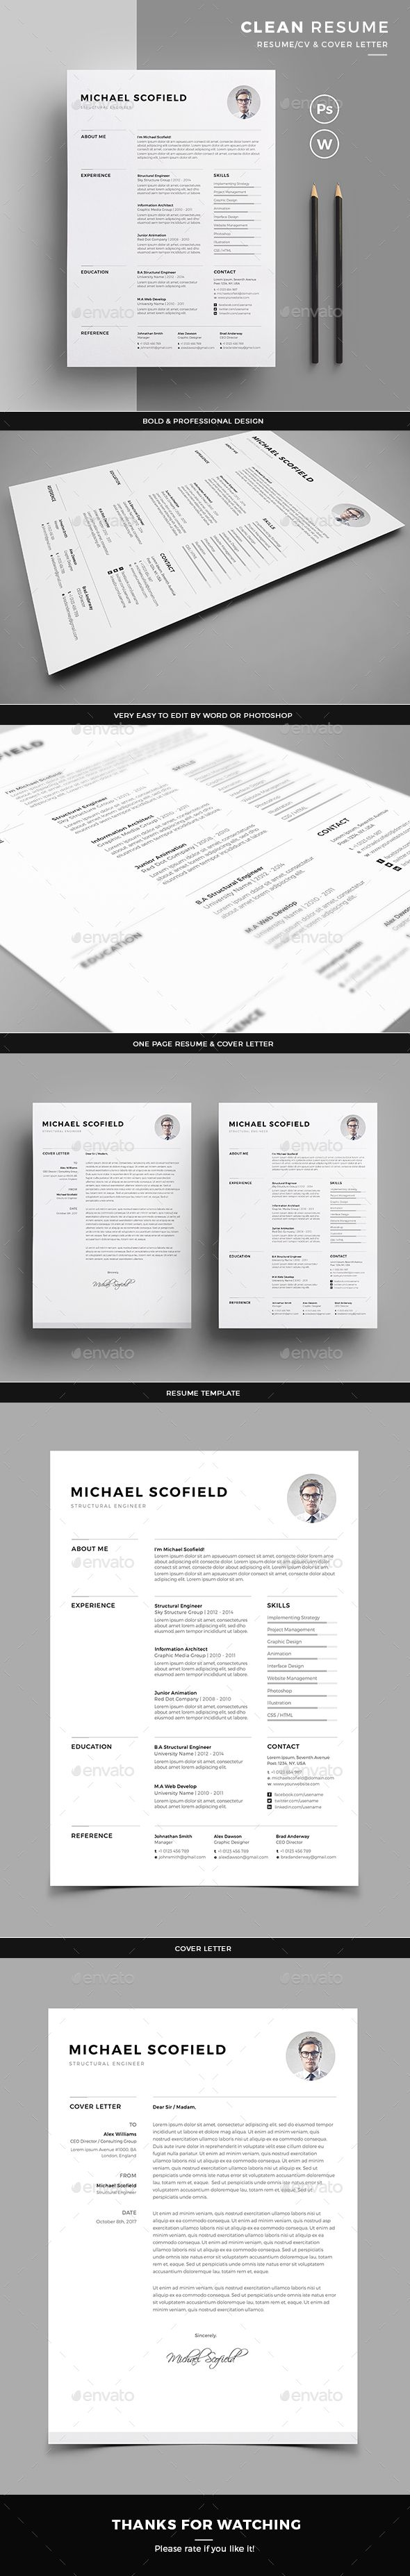 Pin by Maria Alena on Best Resume Templates Resume